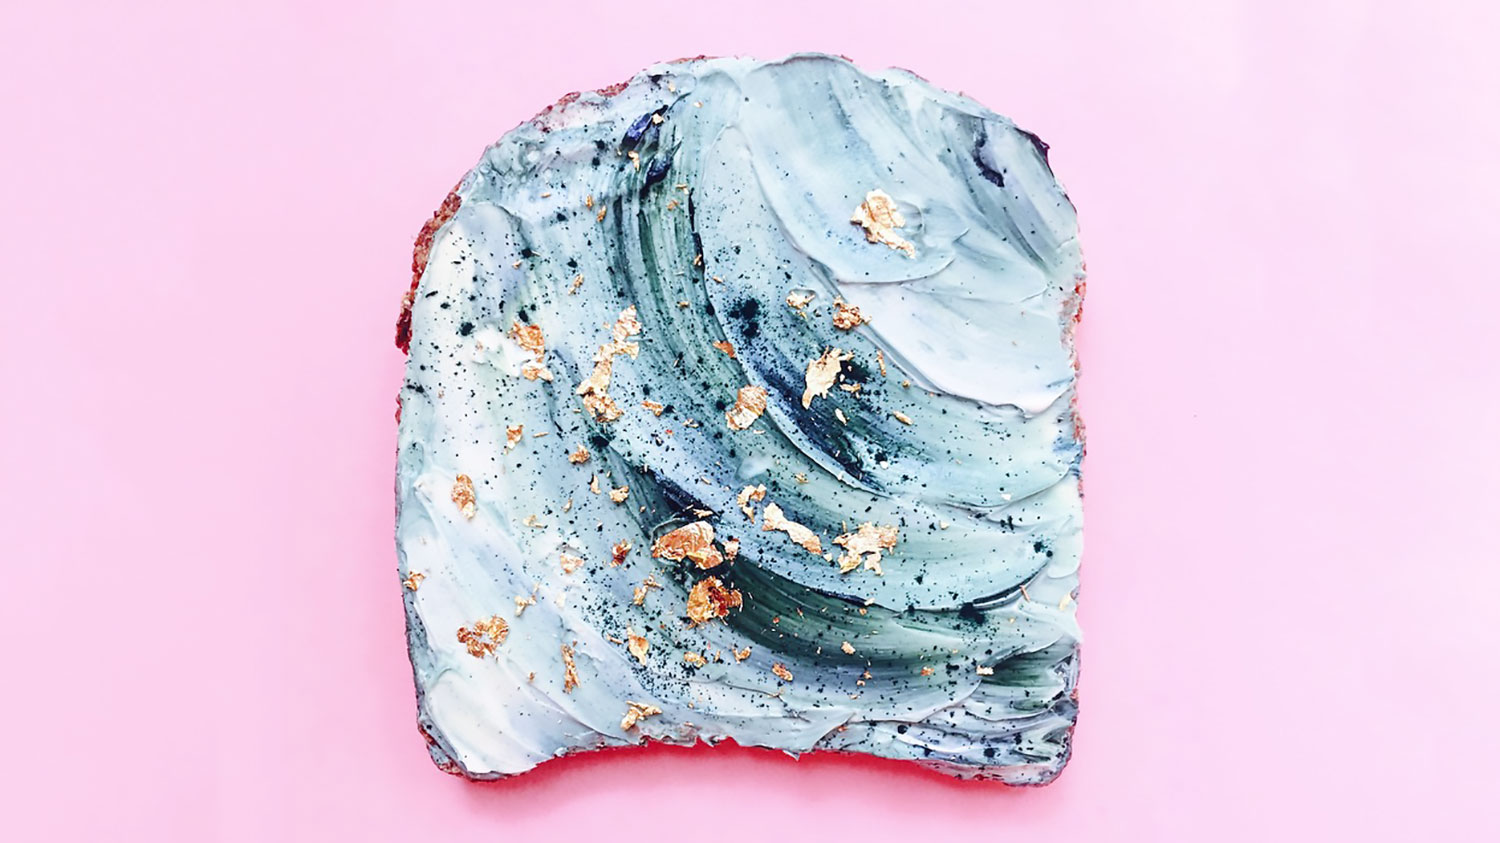 Mermaid Toast Is The New Most Instagrammable Thing On The Internet